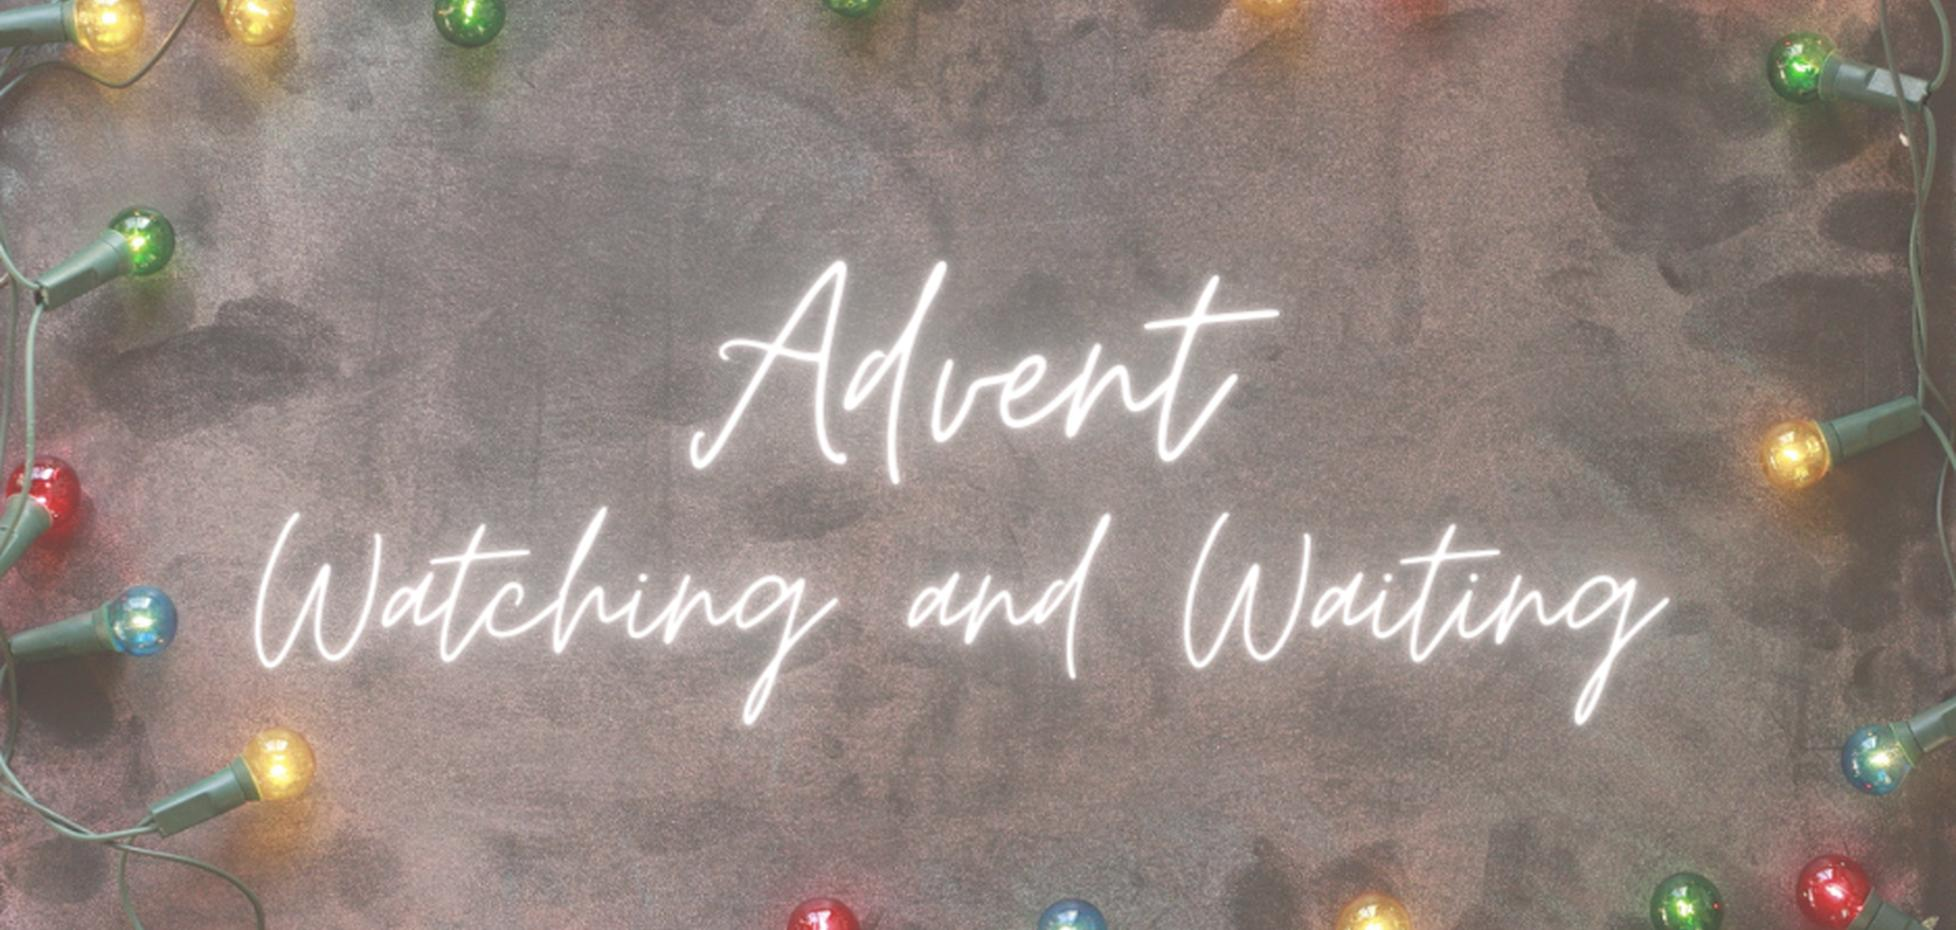 Advent: waiting and watching